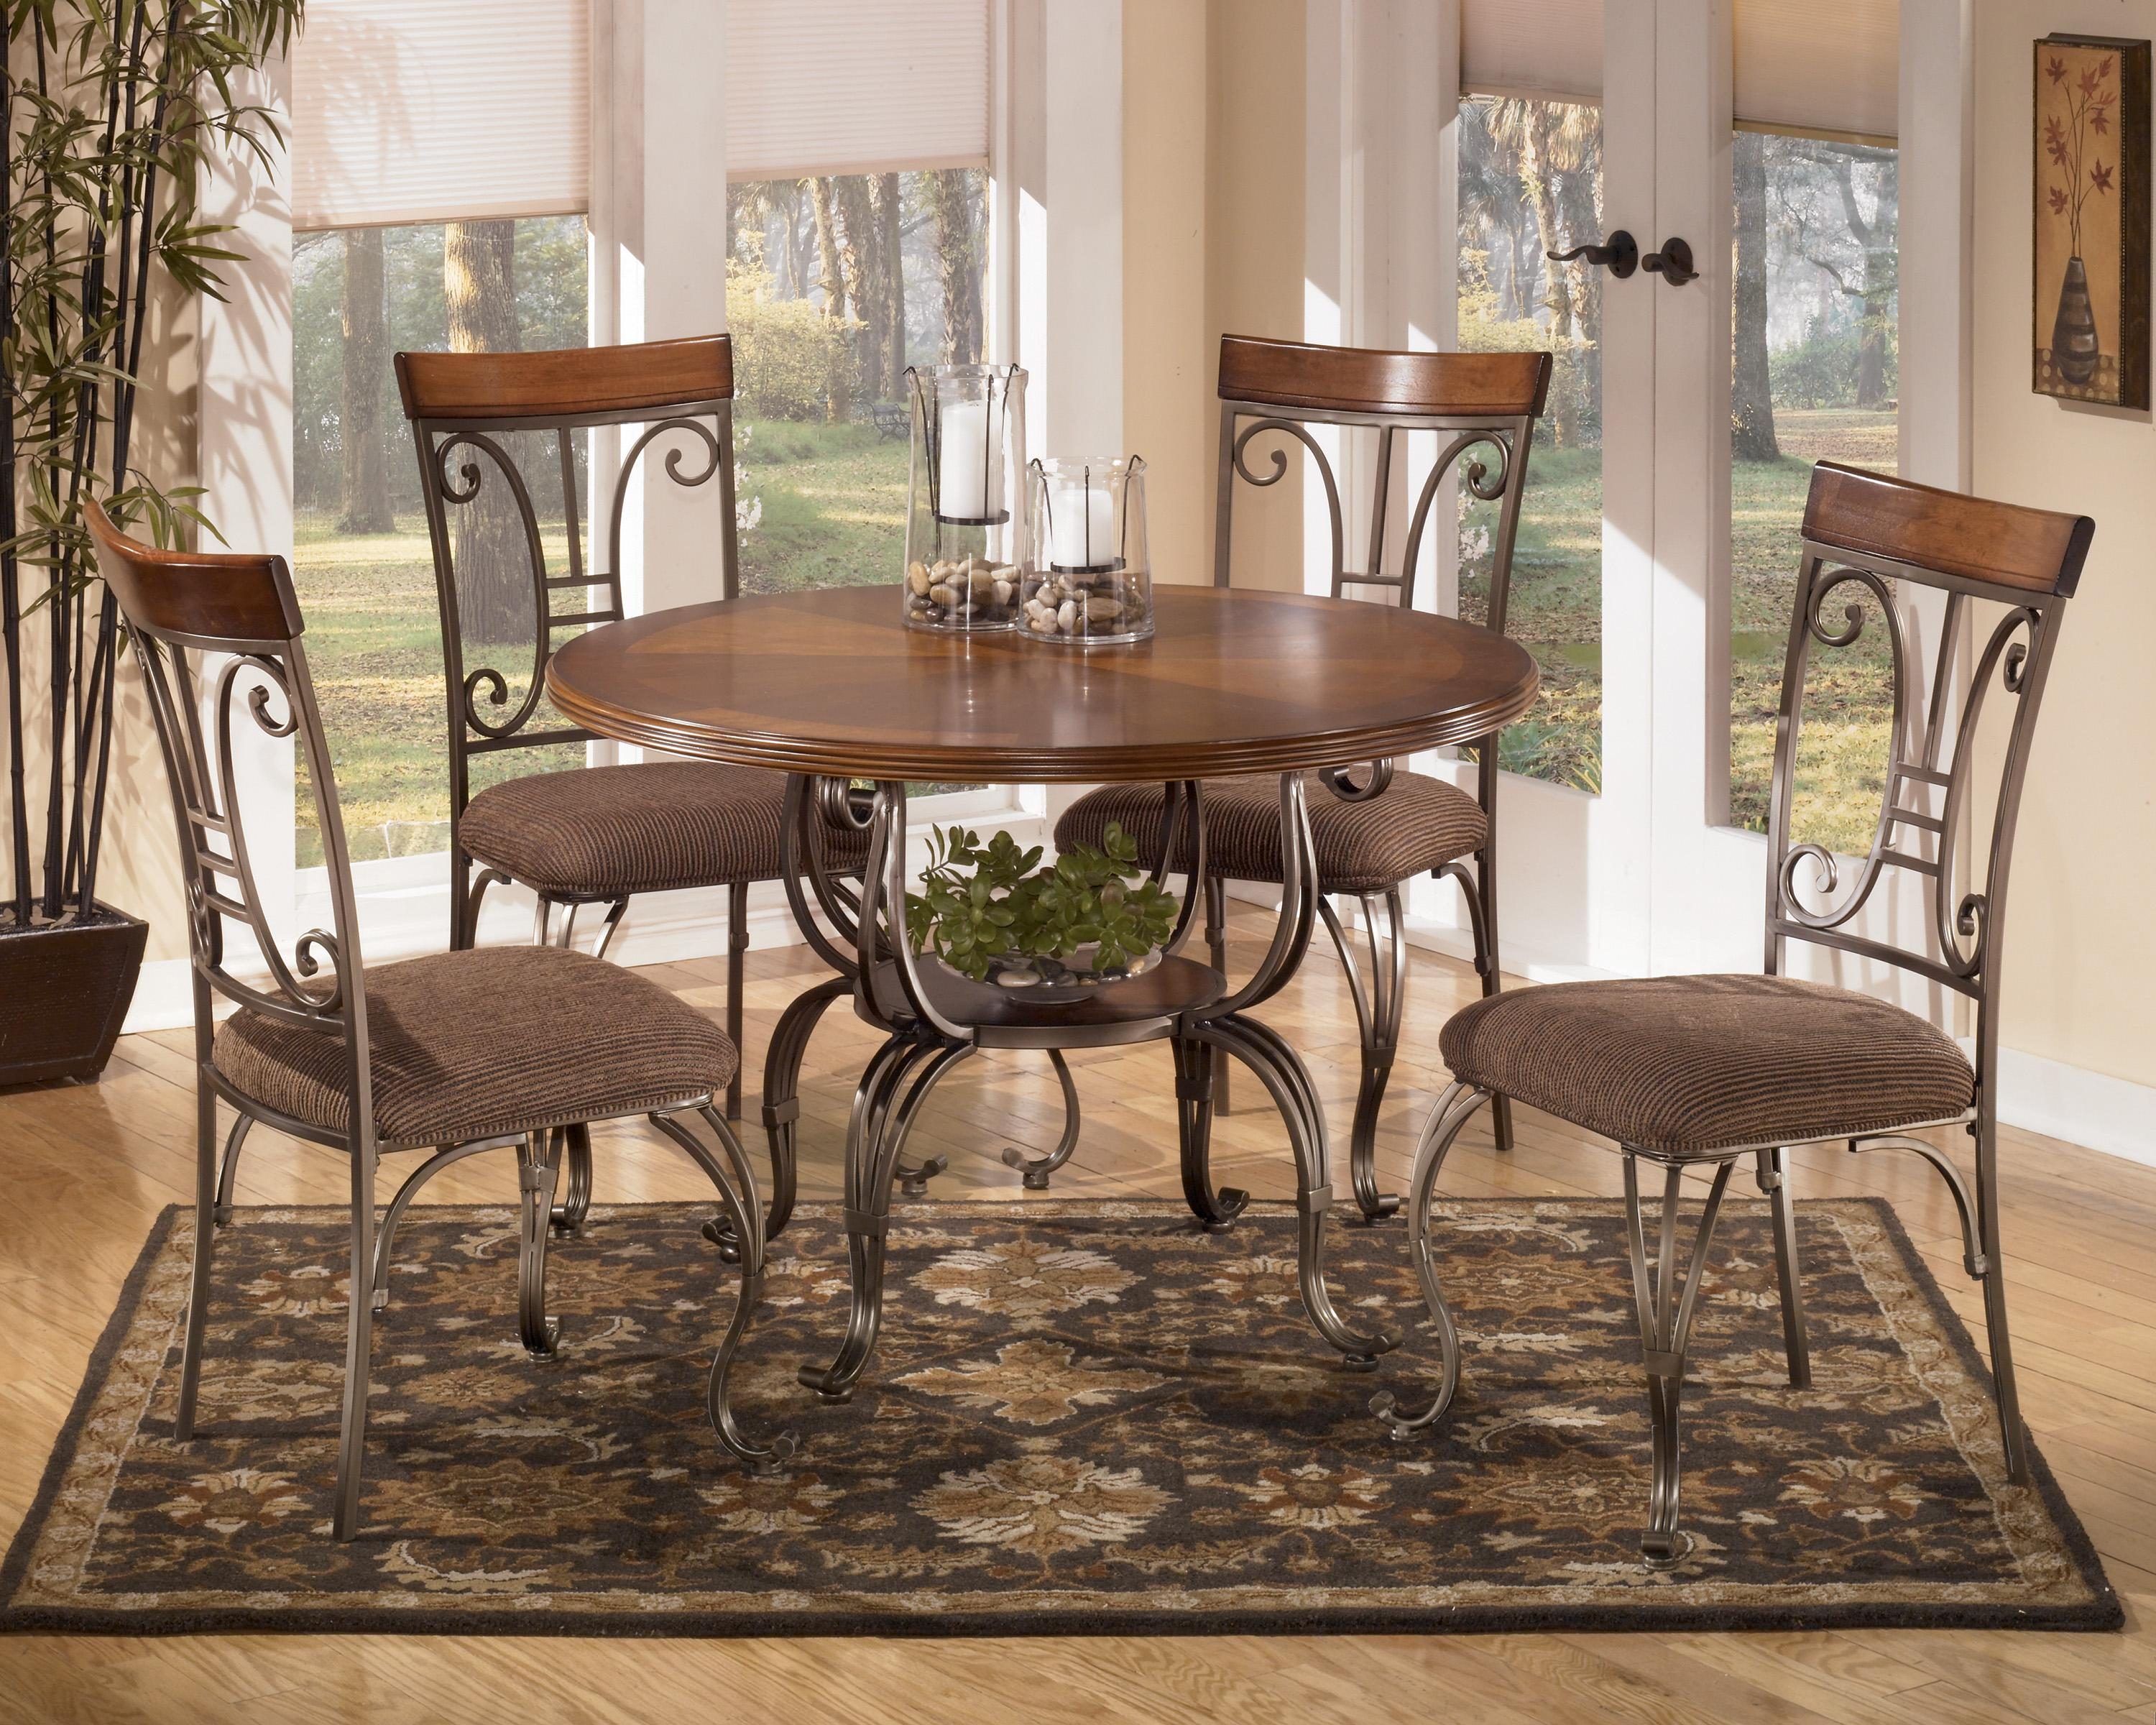 round kitchen table set Signature Design by Ashley Furniture Plentywood 5 Piece Round Dining Table Set Item Number